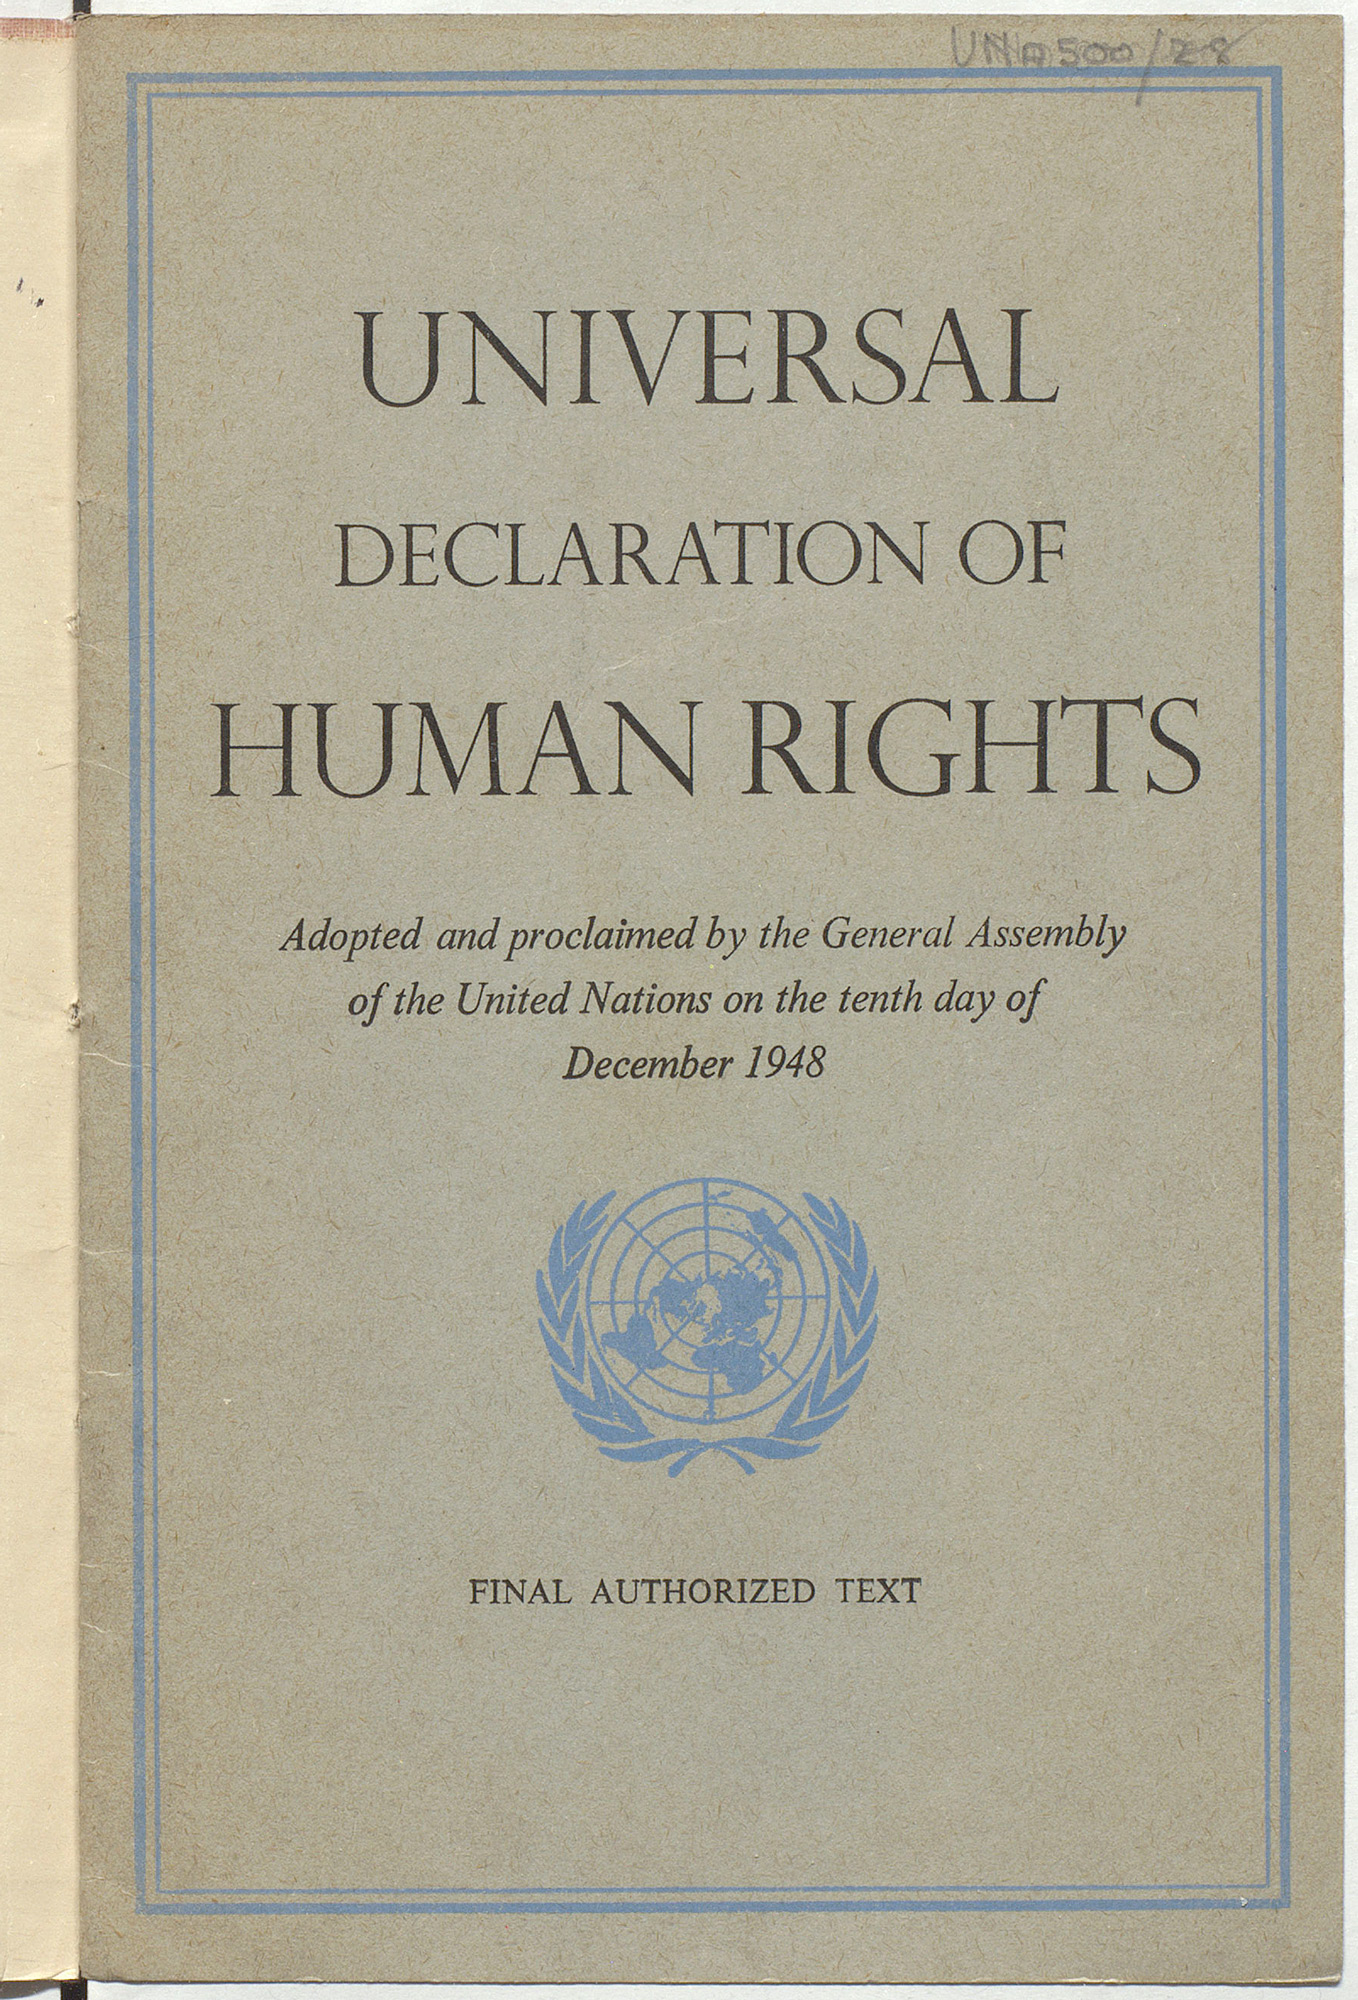 universal declaration of human rights - the british library